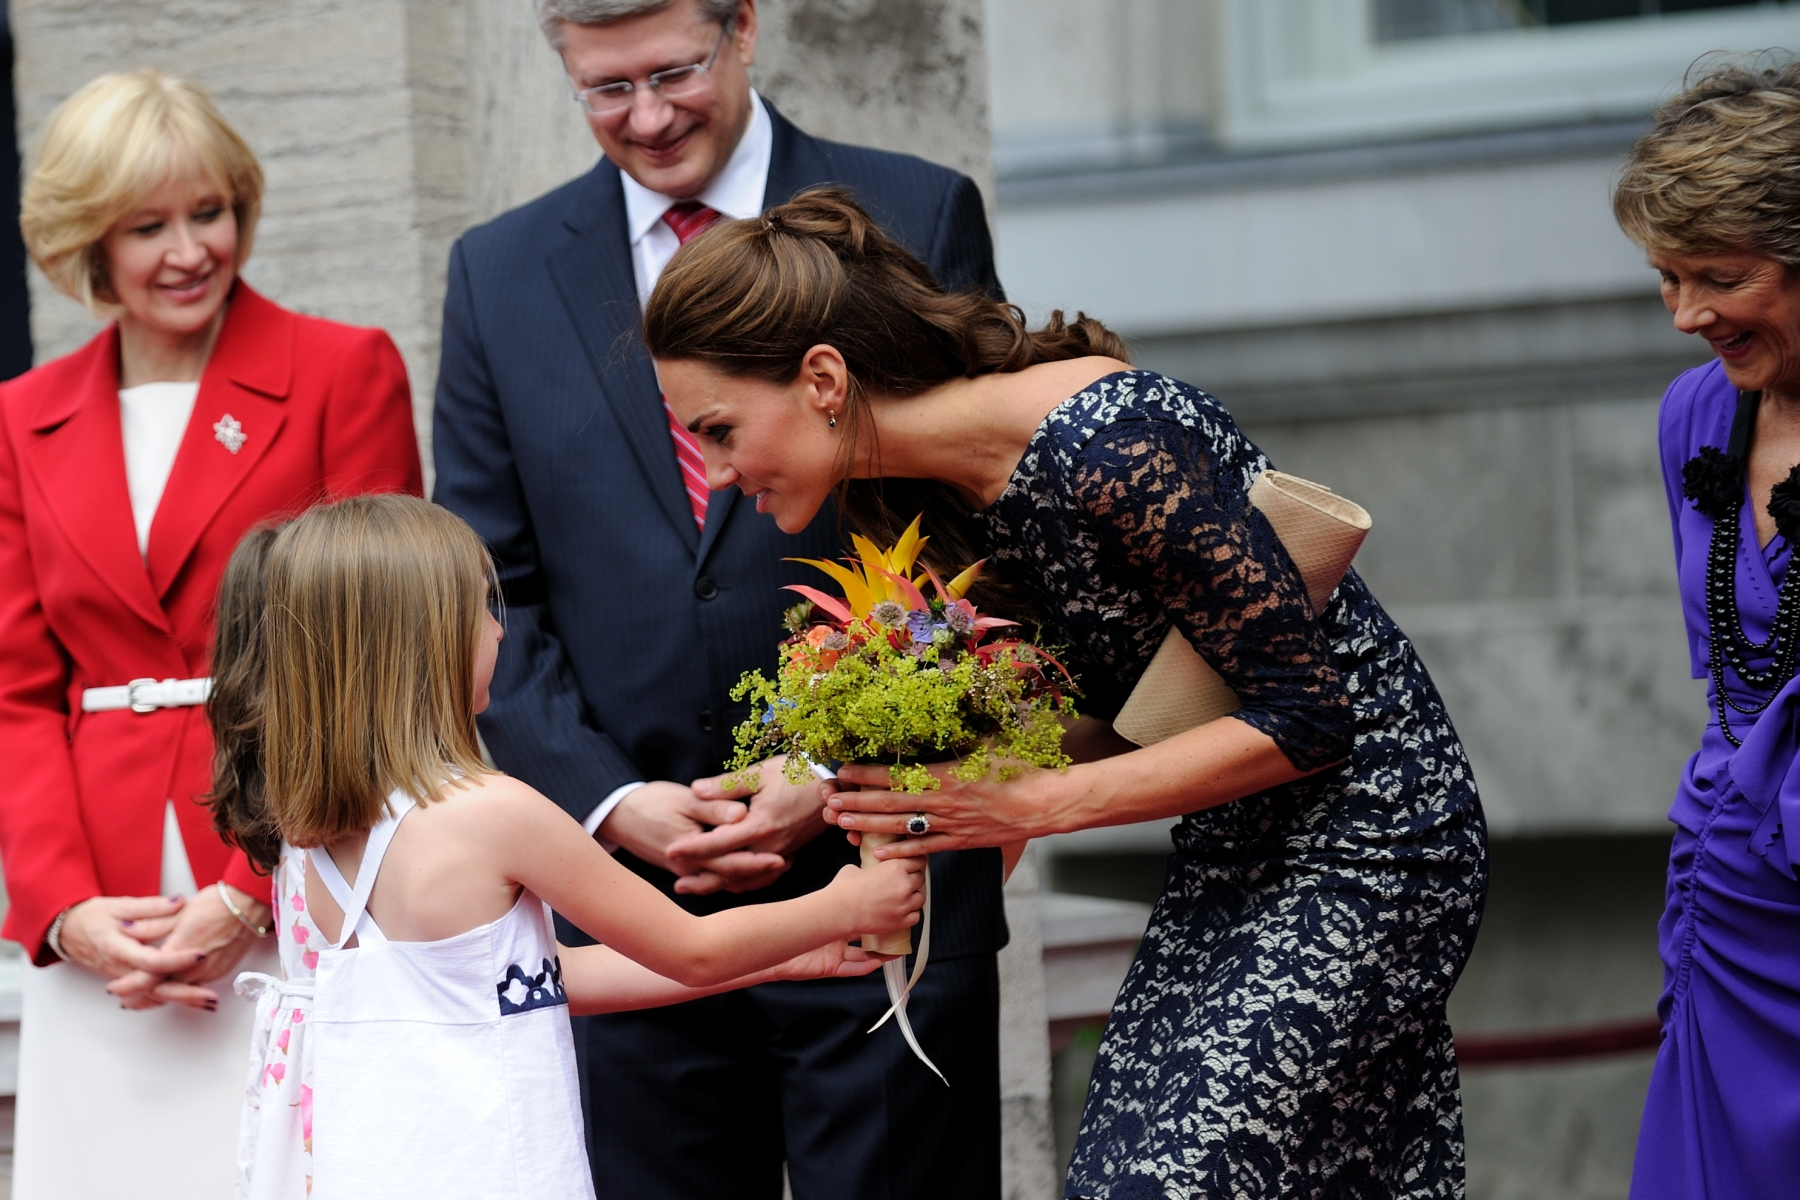 The ceremony concluded with Aurélie Thibault from Chelsea, Quebec, who presented flowers to Her Royal Highness.